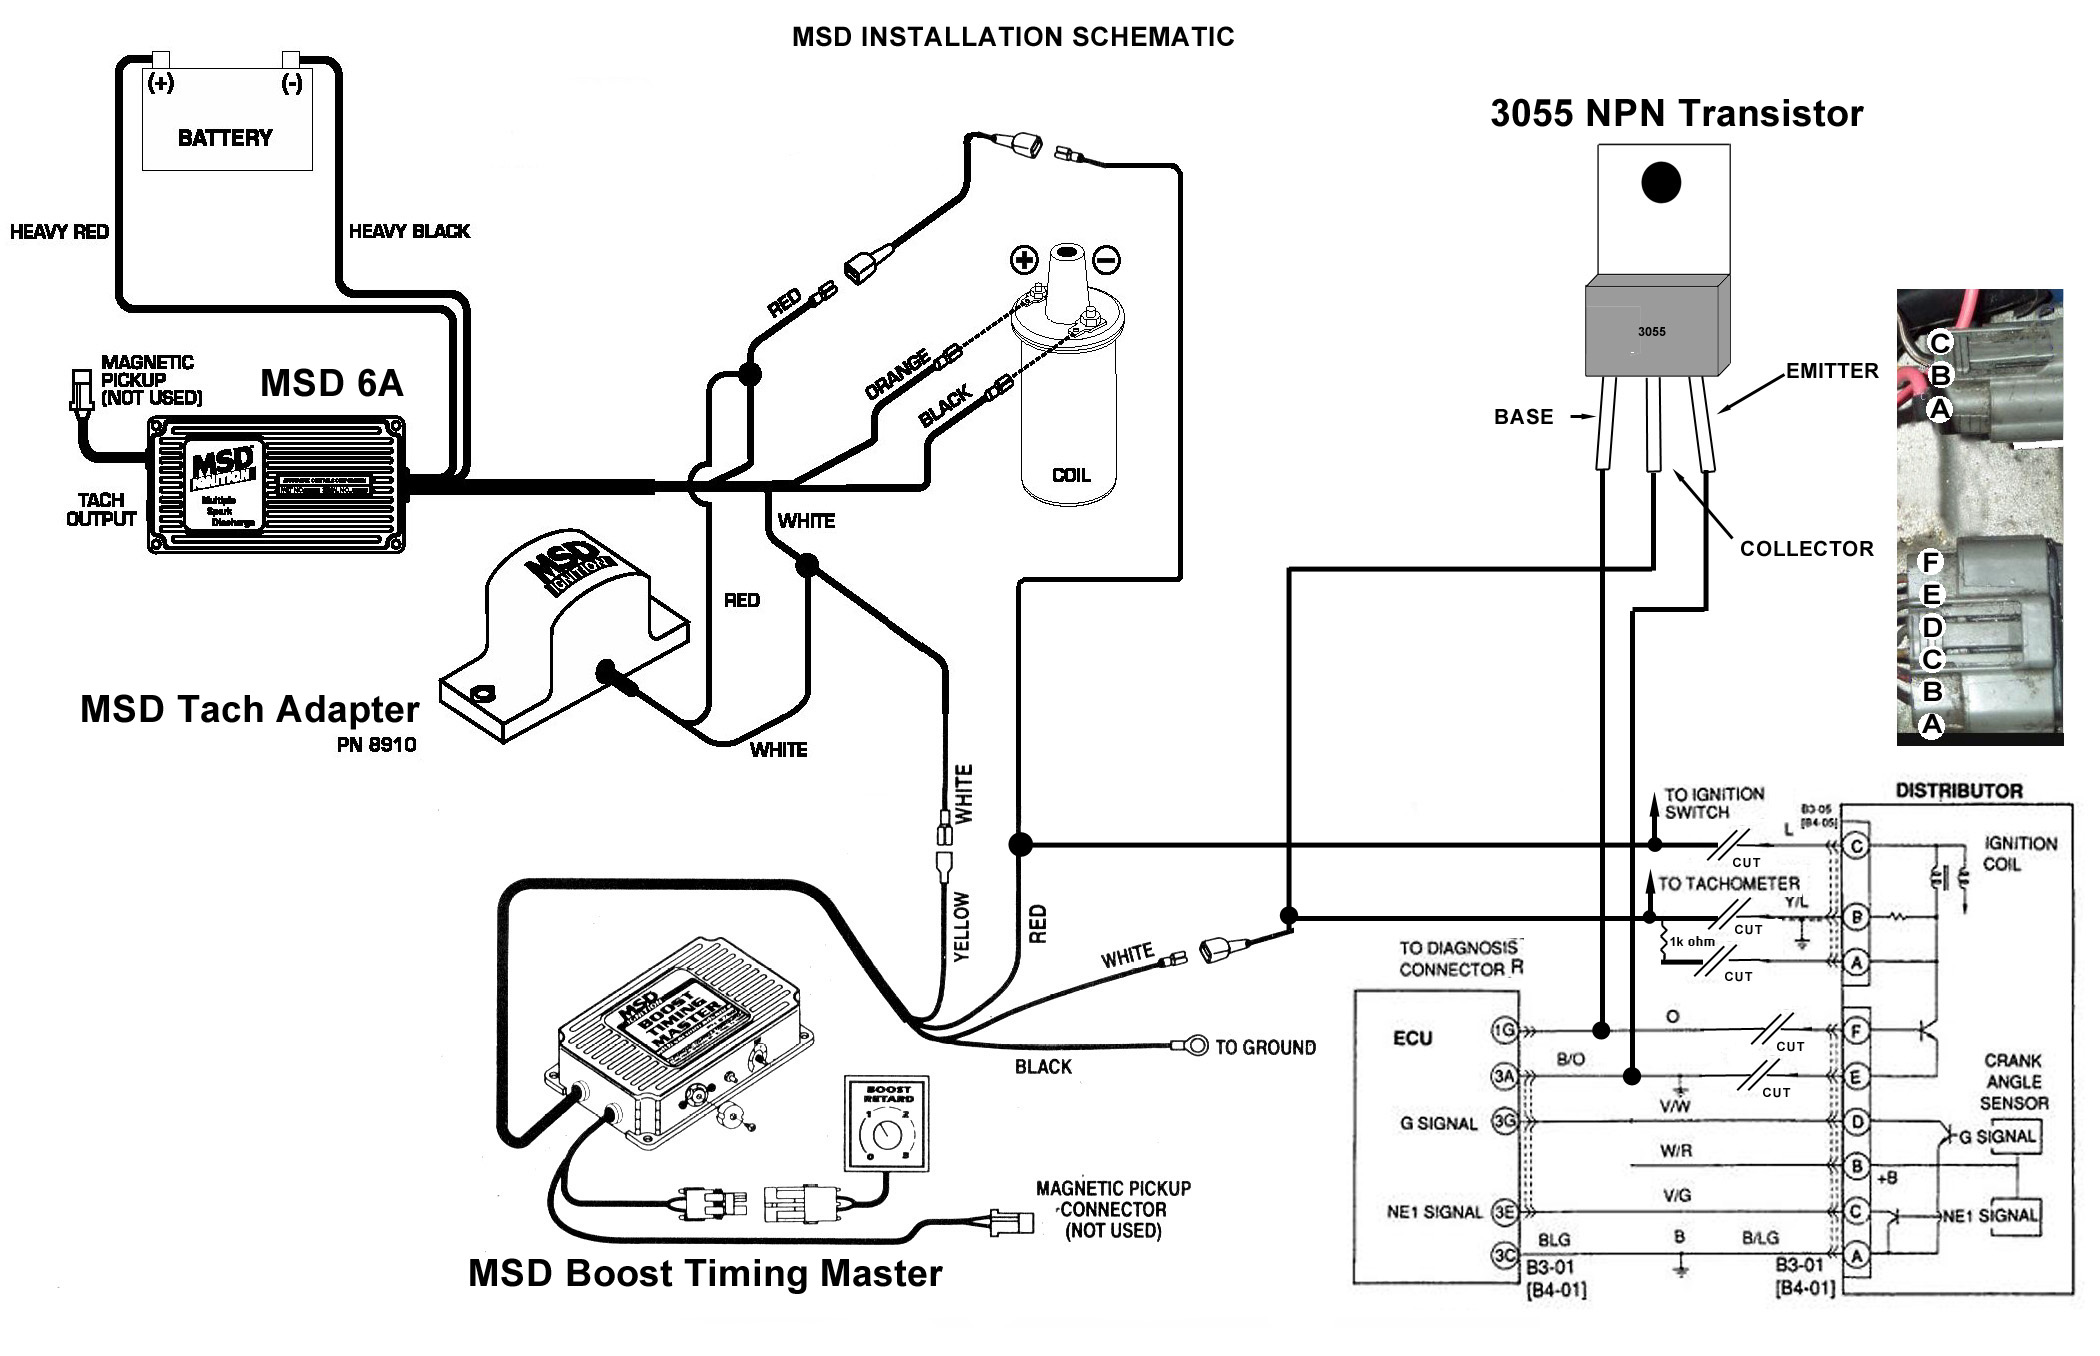 msd_complete can we use the msd boost timing master for our car? mazda mx 6 forum msd boost timing master wiring diagram at panicattacktreatment.co